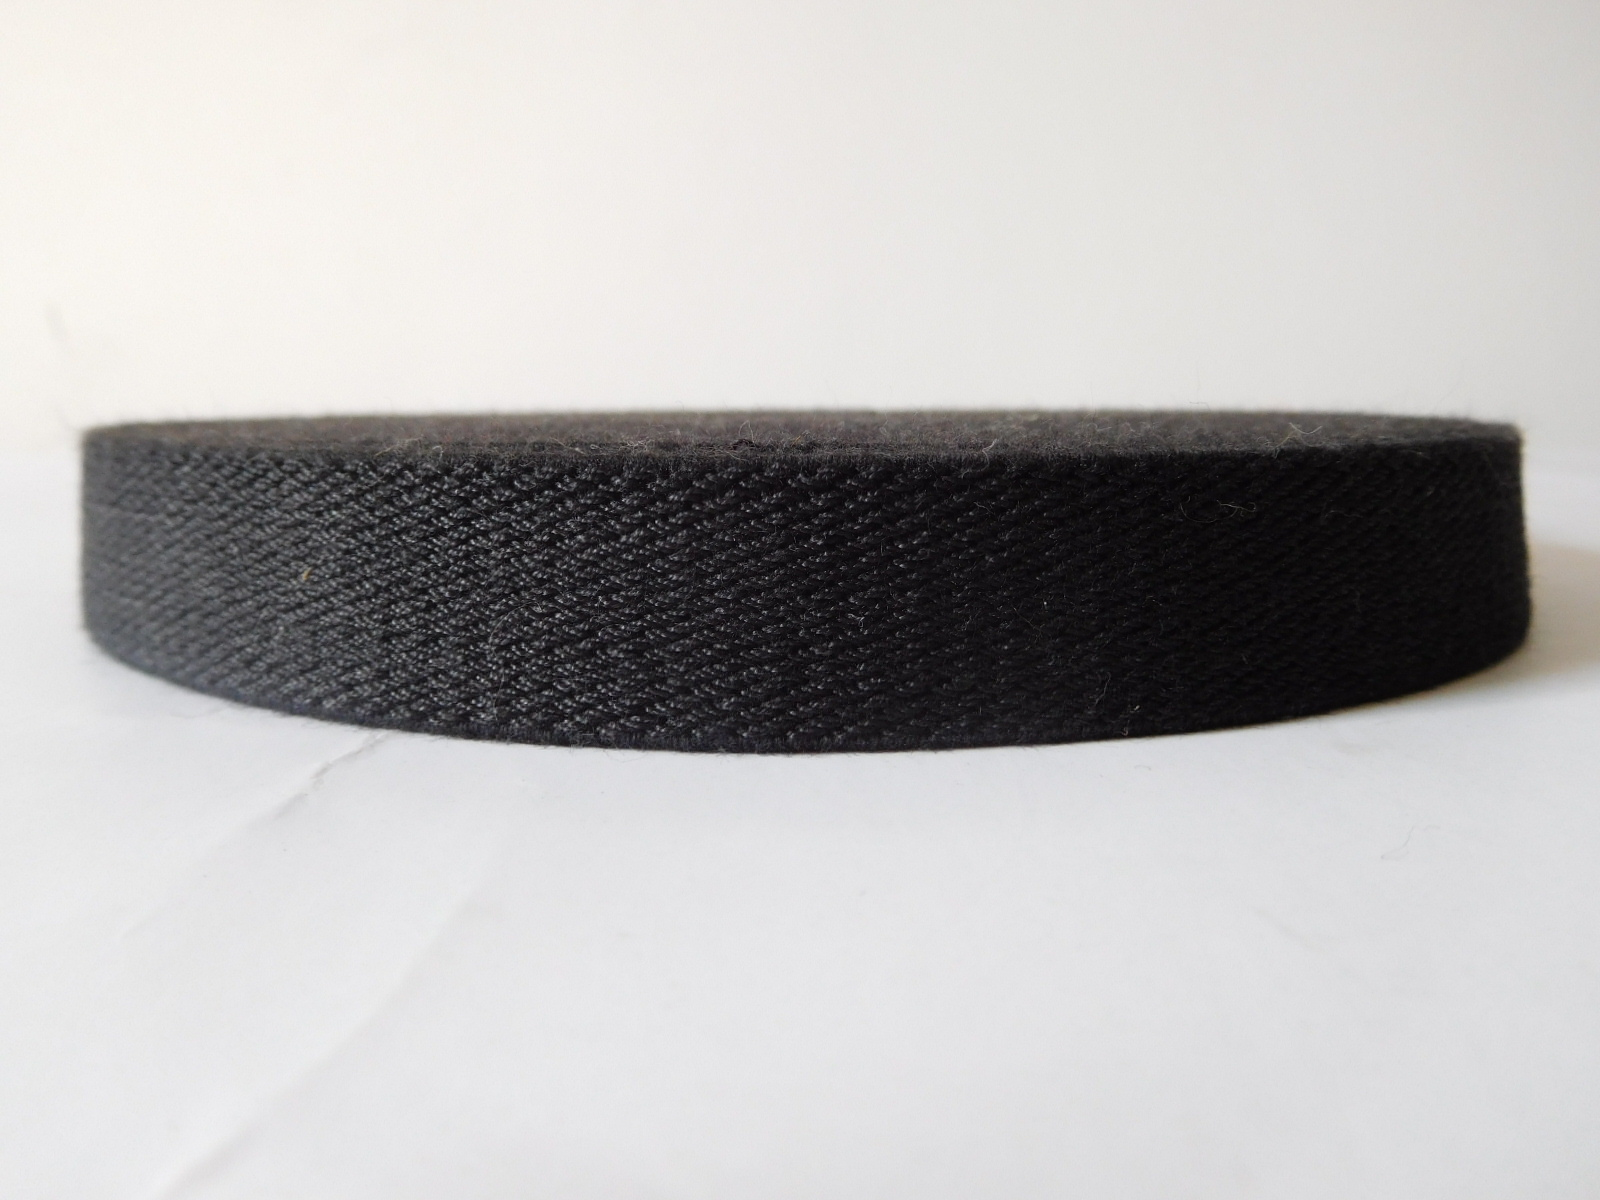 fire protection black aramid webbing for industry or garment accessories